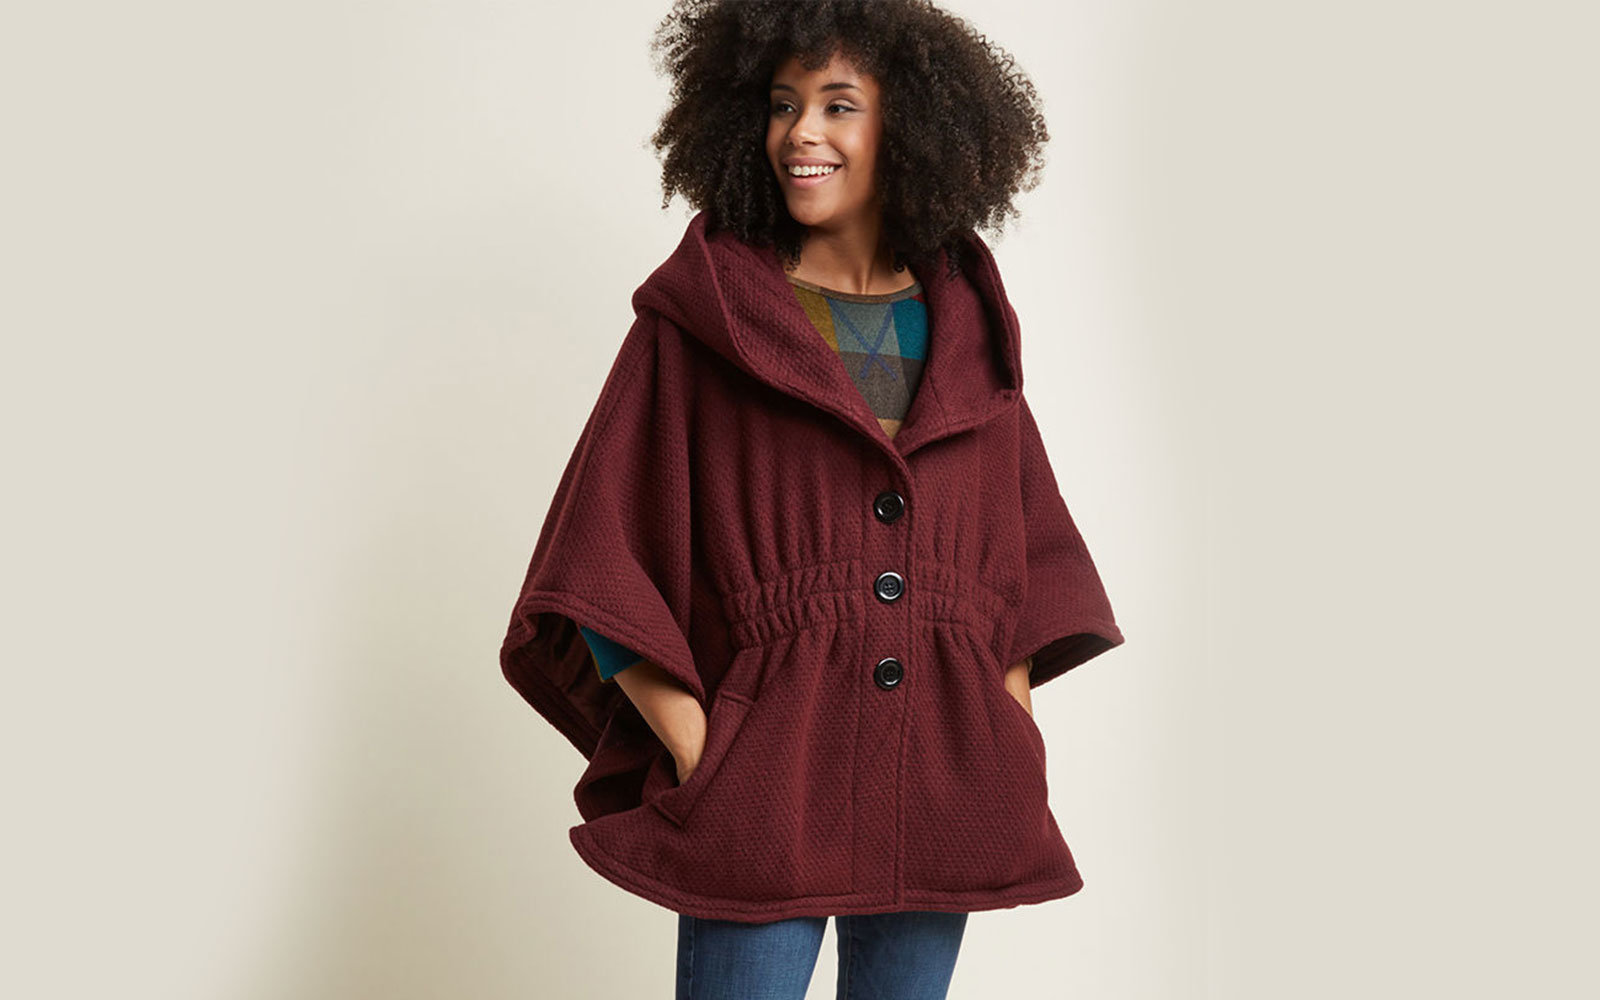 f095e146a67 Modcloth Women s  Hood if I Could  Cape Coat